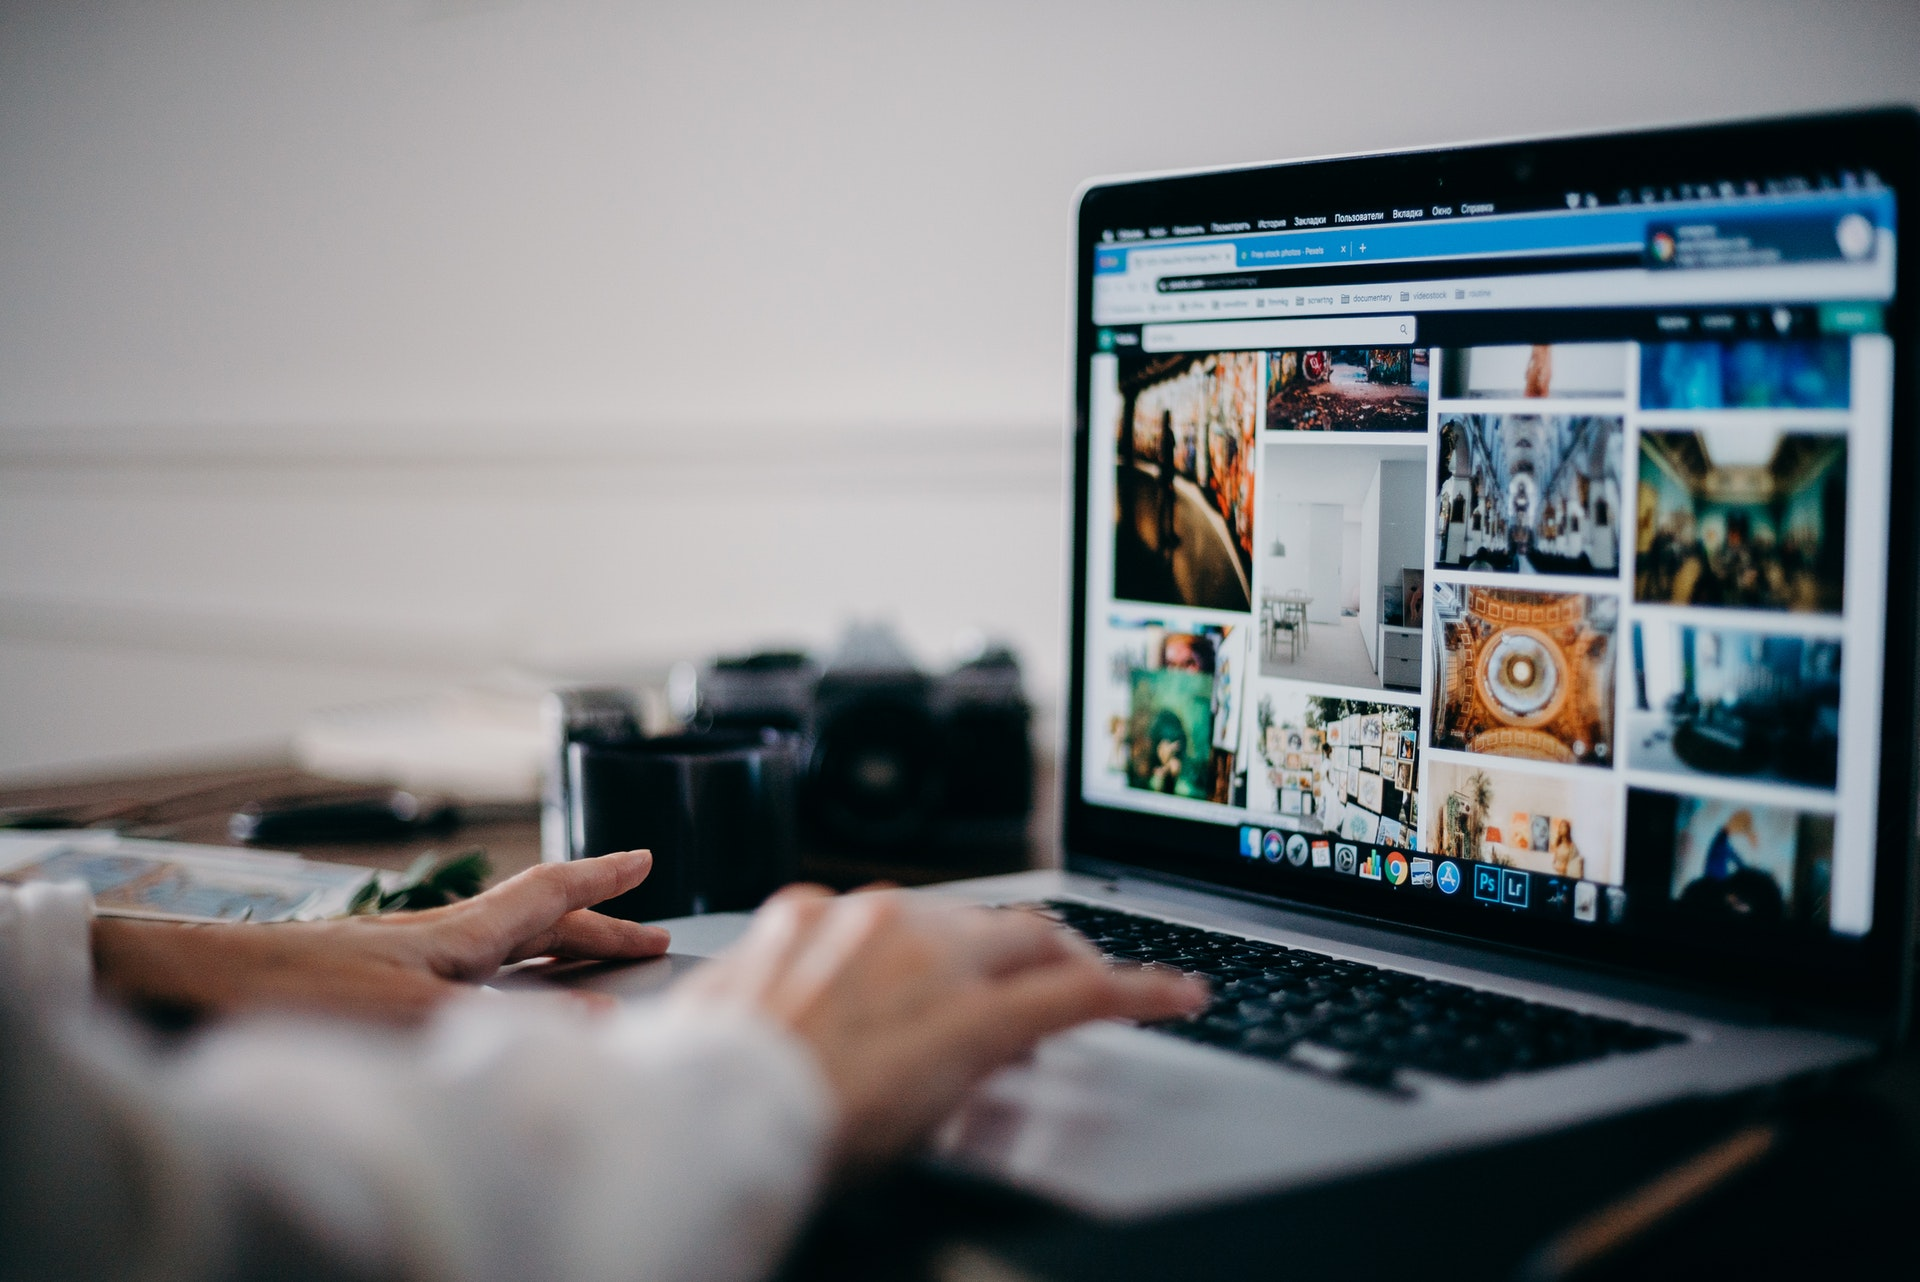 How to Prepare Photos to Share Online